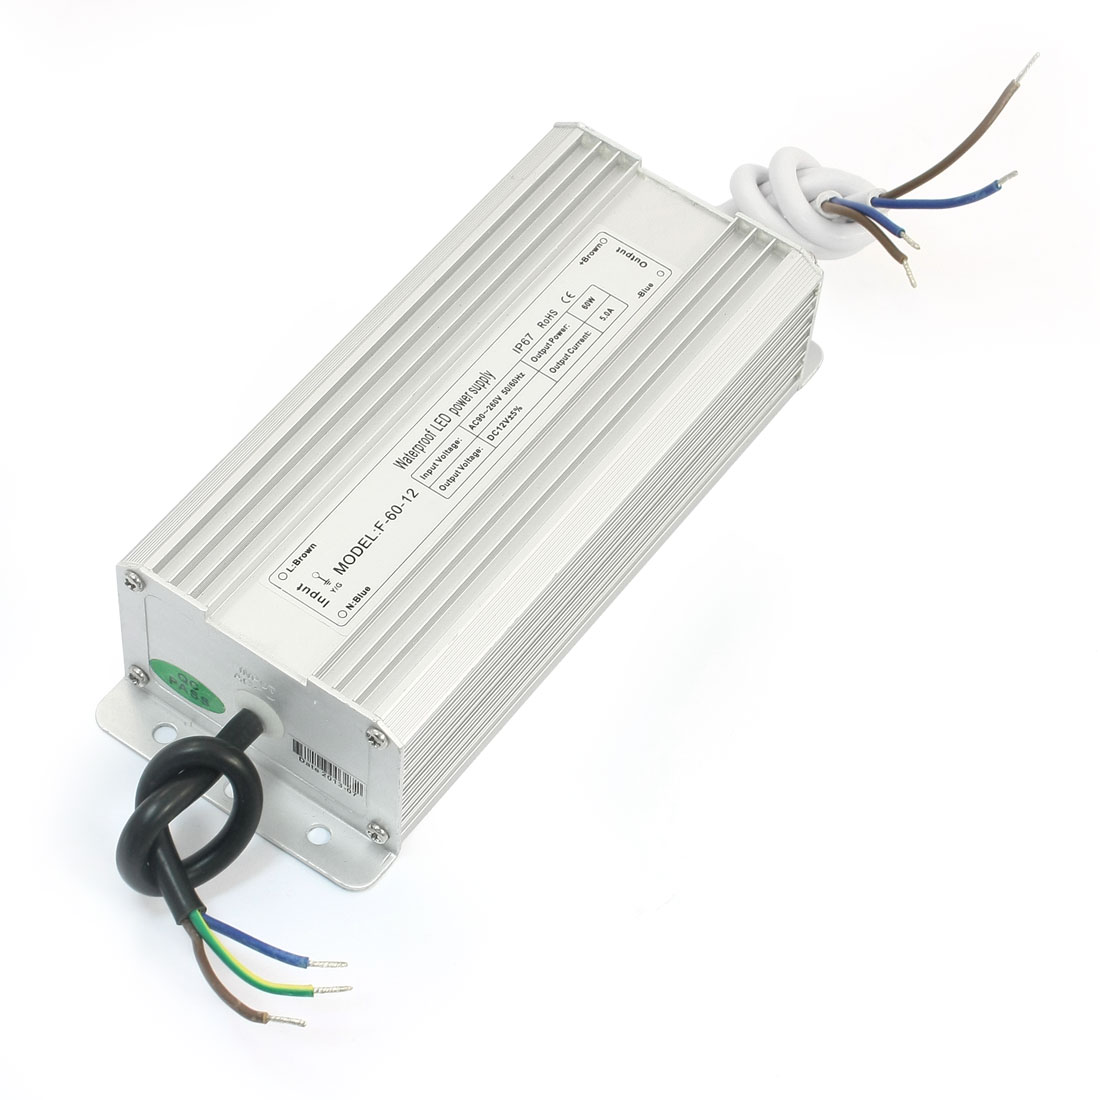 AC 90-260V Waterproof Power Supply Driver for DC 12V 60W LED Light